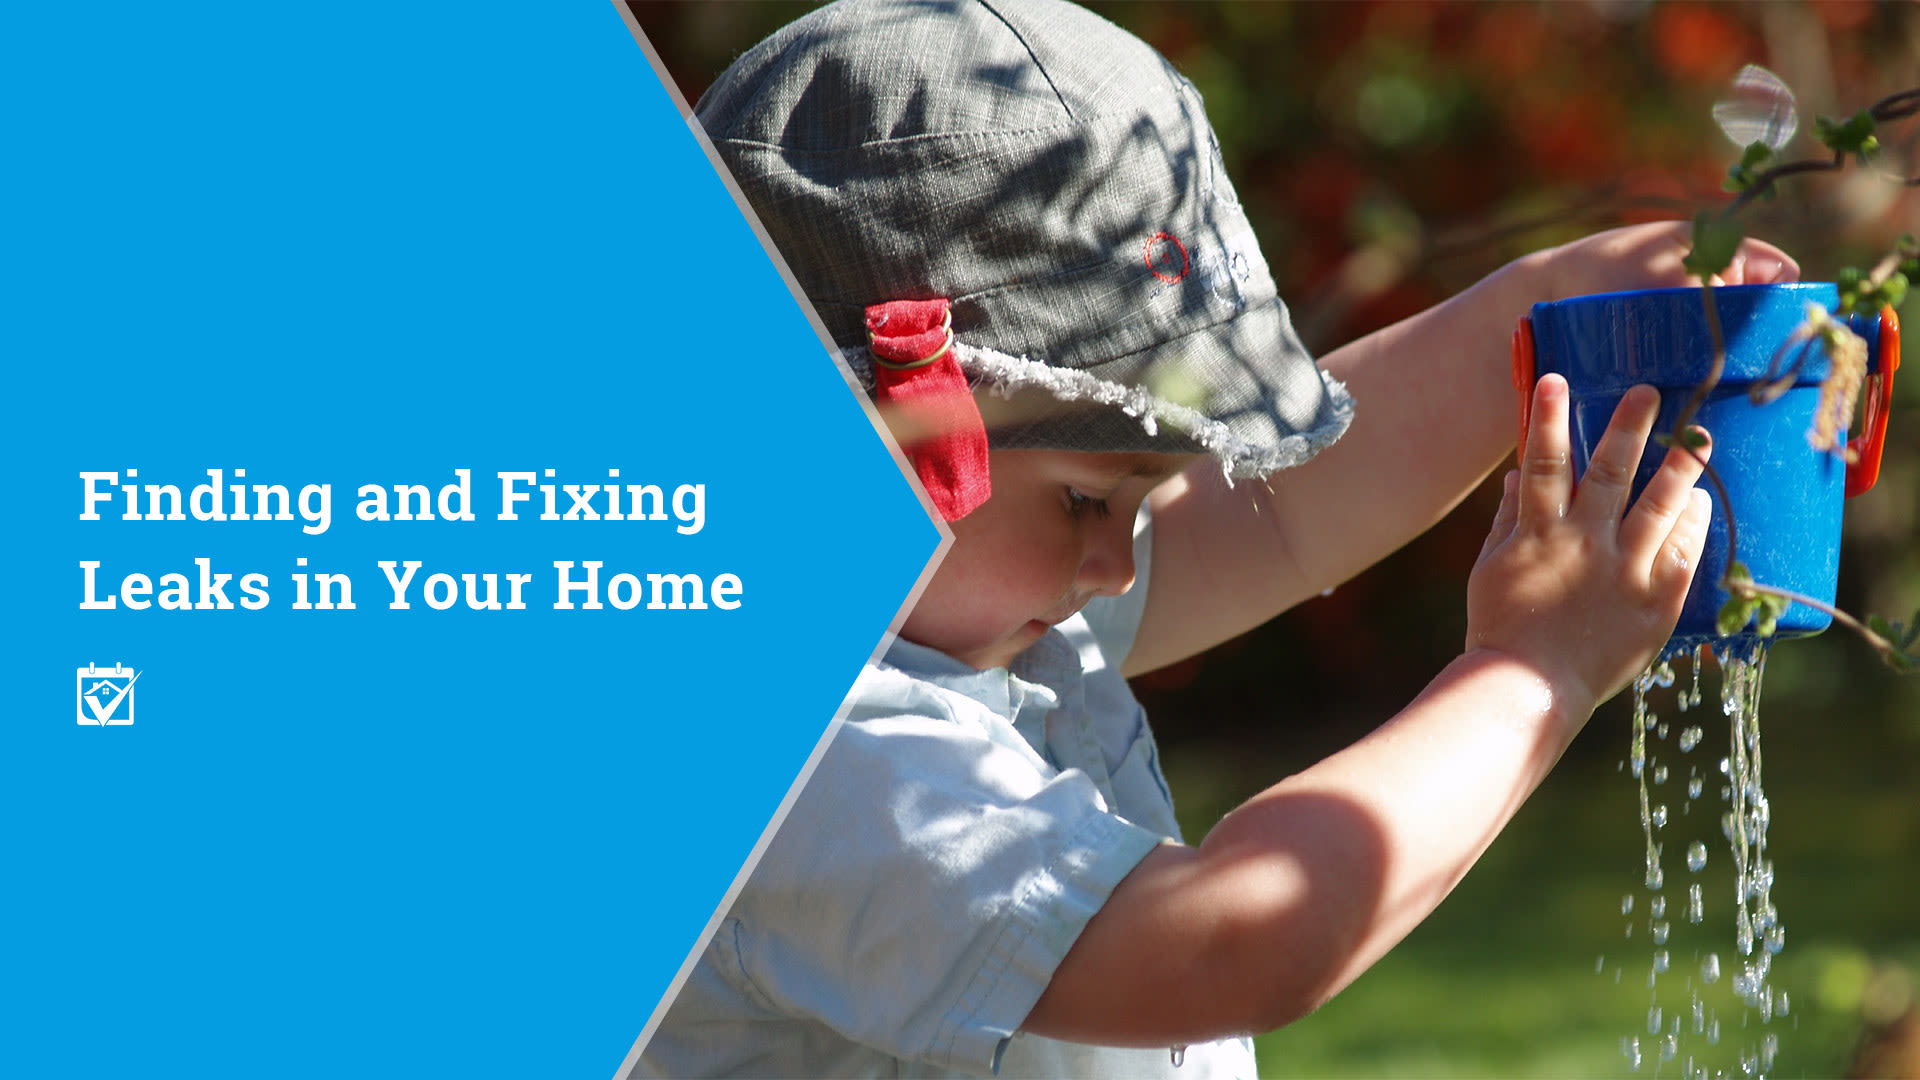 Finding and Fixing Leaks in Your Home